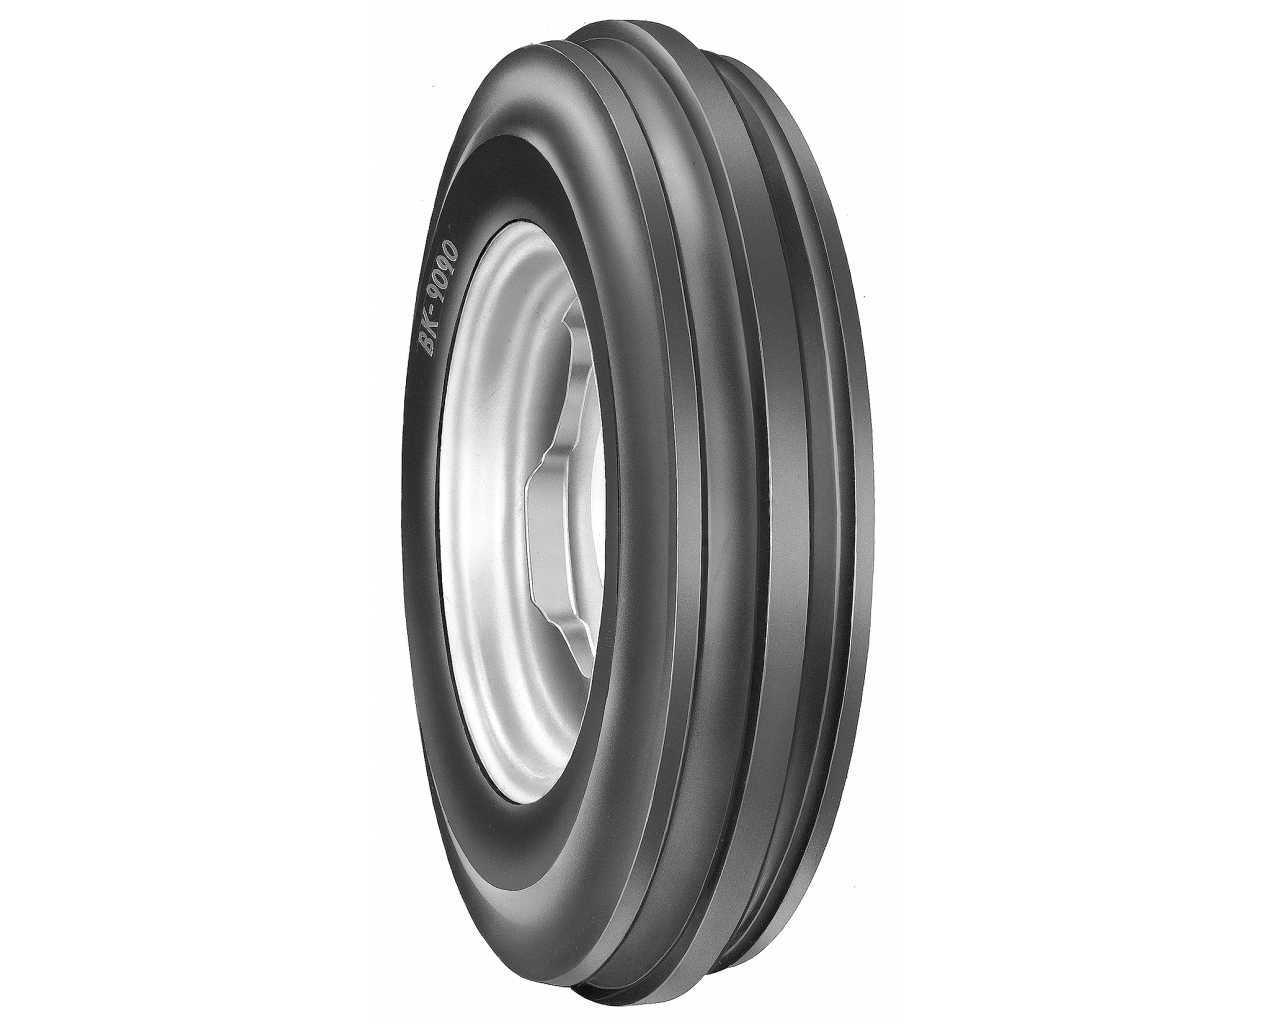 6.00-16 BKT TF-9090 TT 6PLY Agricultural 600-16 88A6 Tractor Front Tyres